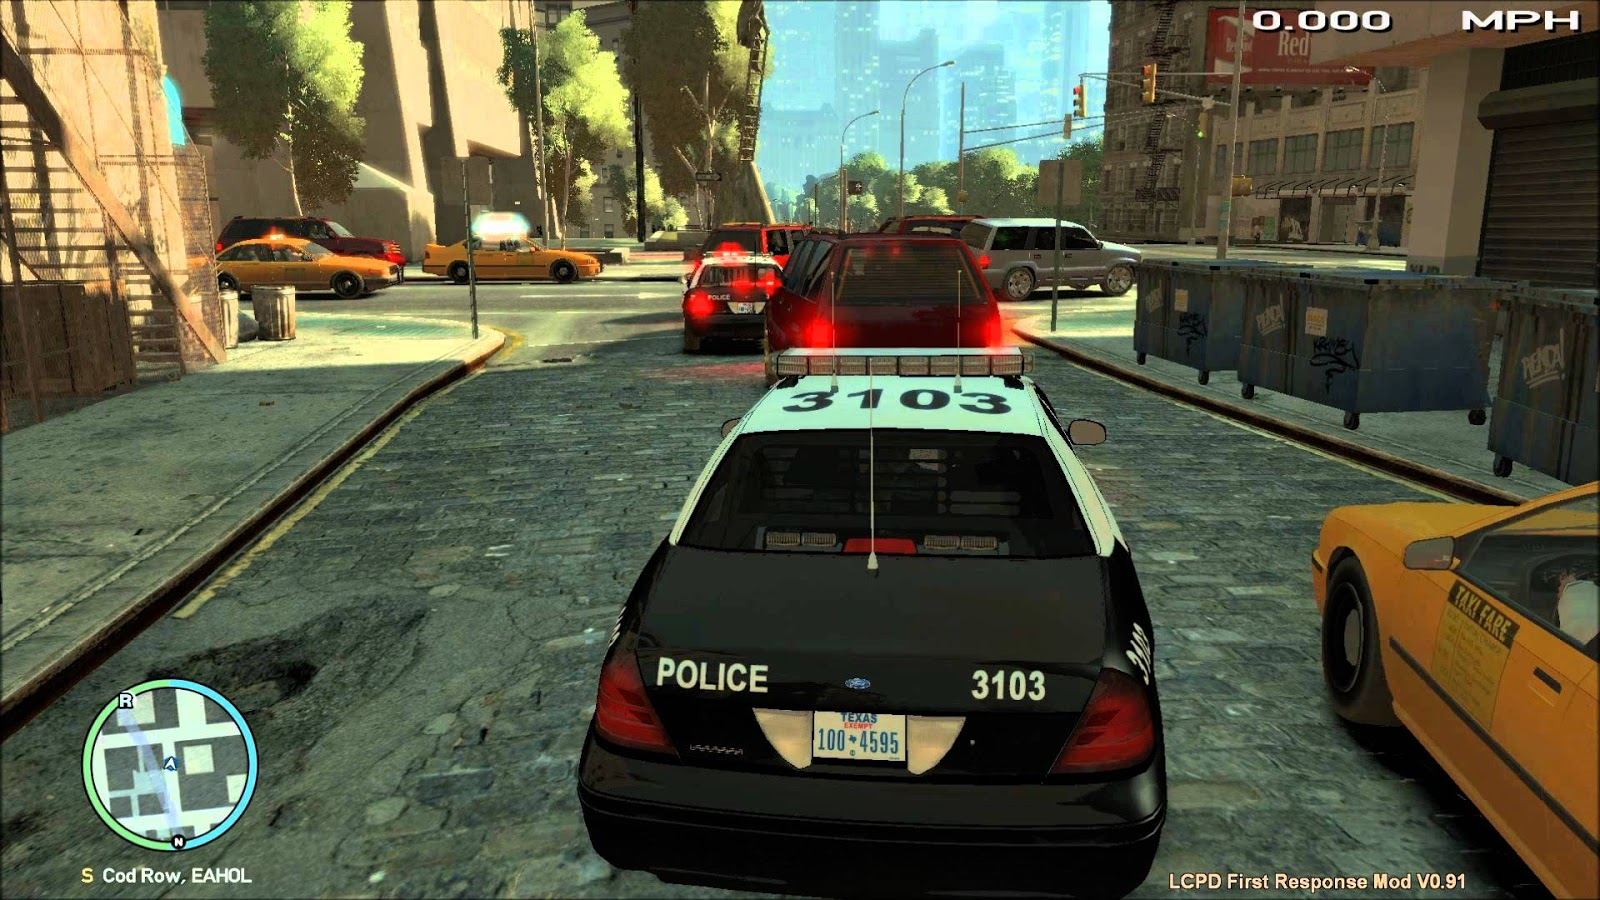 Download GTA 5 in 3MB For PC Fully Highly Compressed Game ...